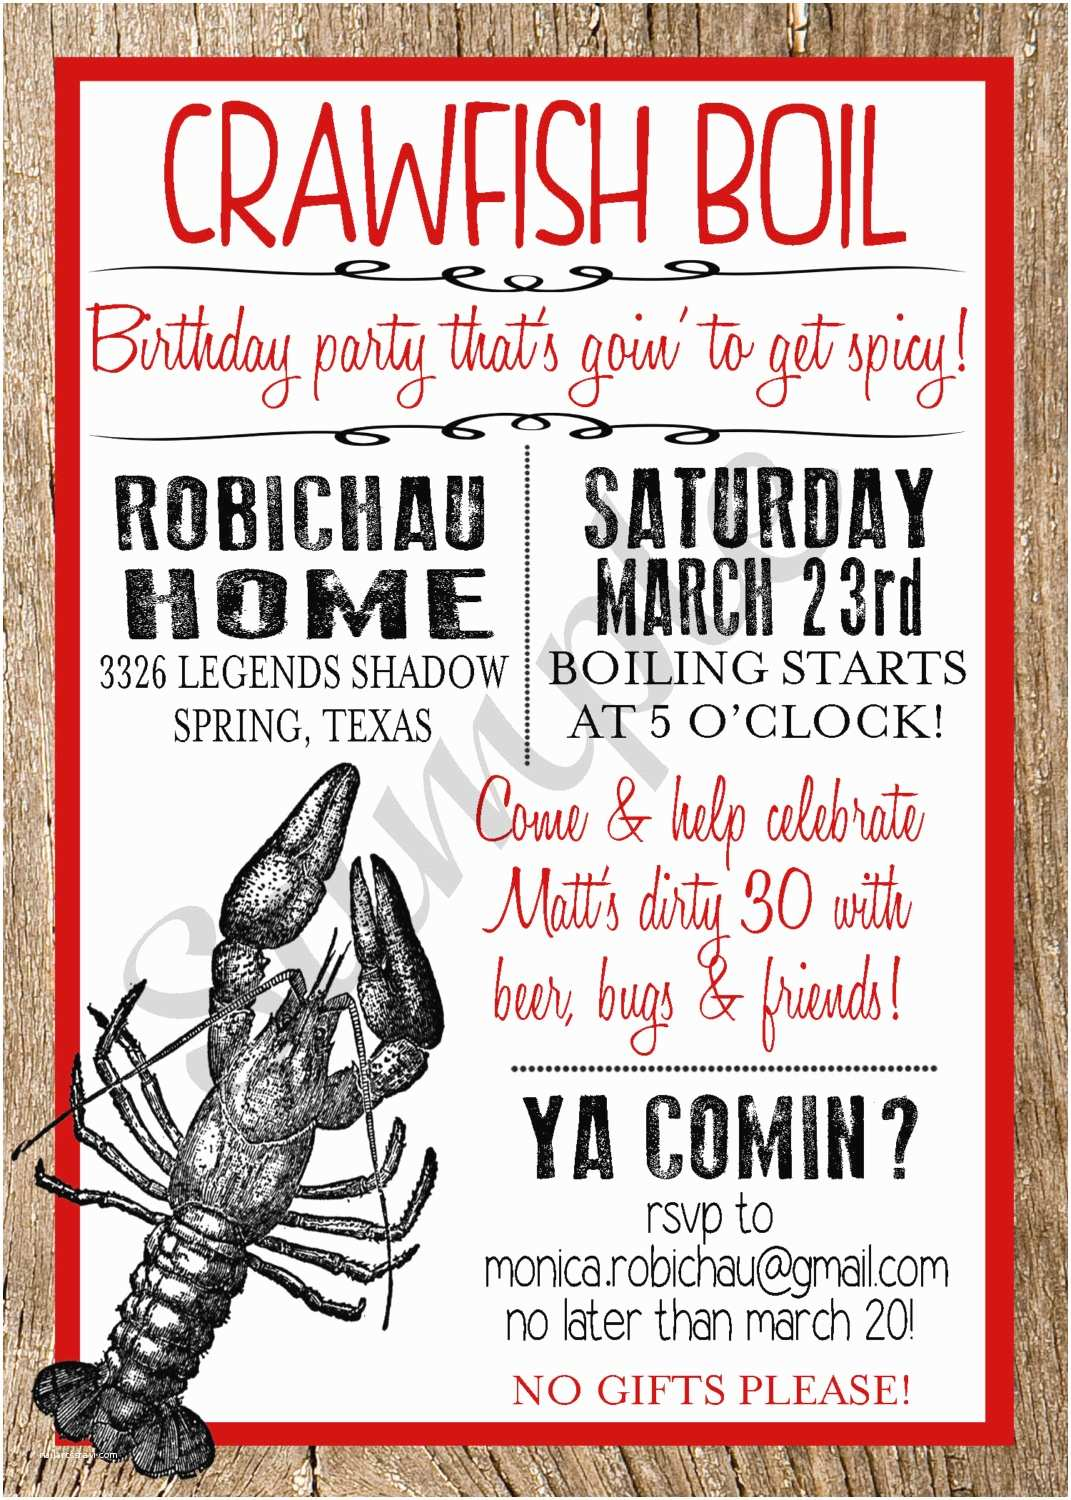 Electronic Party Invitations Crawfish Boil Custom Digital Invitation by Markedbymonica